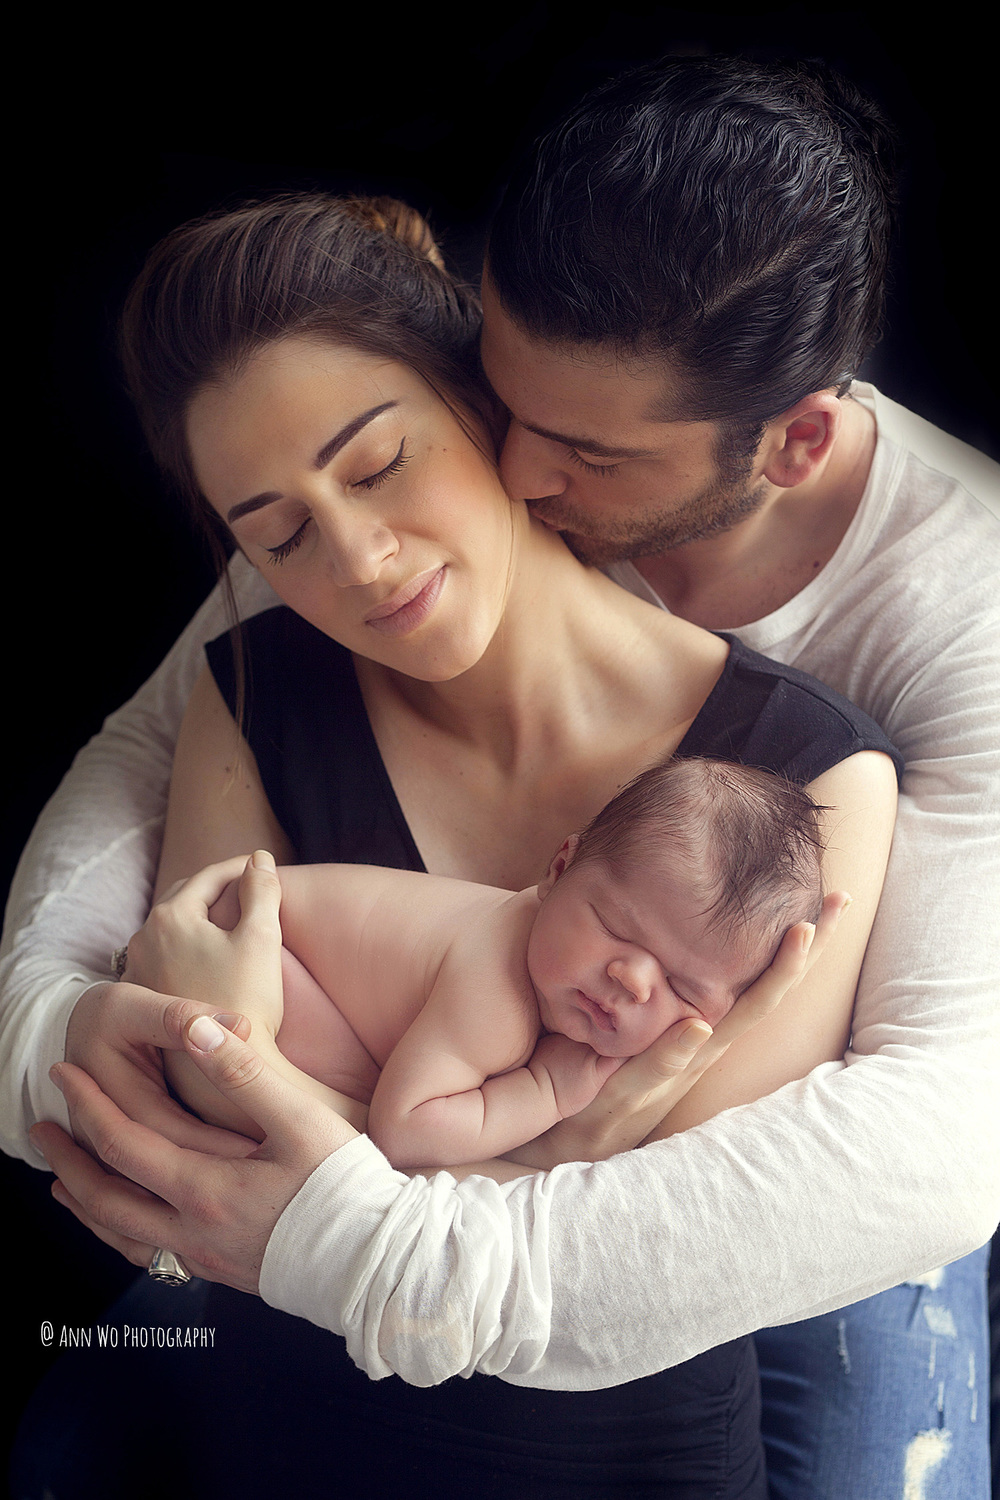 newborn baby and parents black background ann wo photography uk